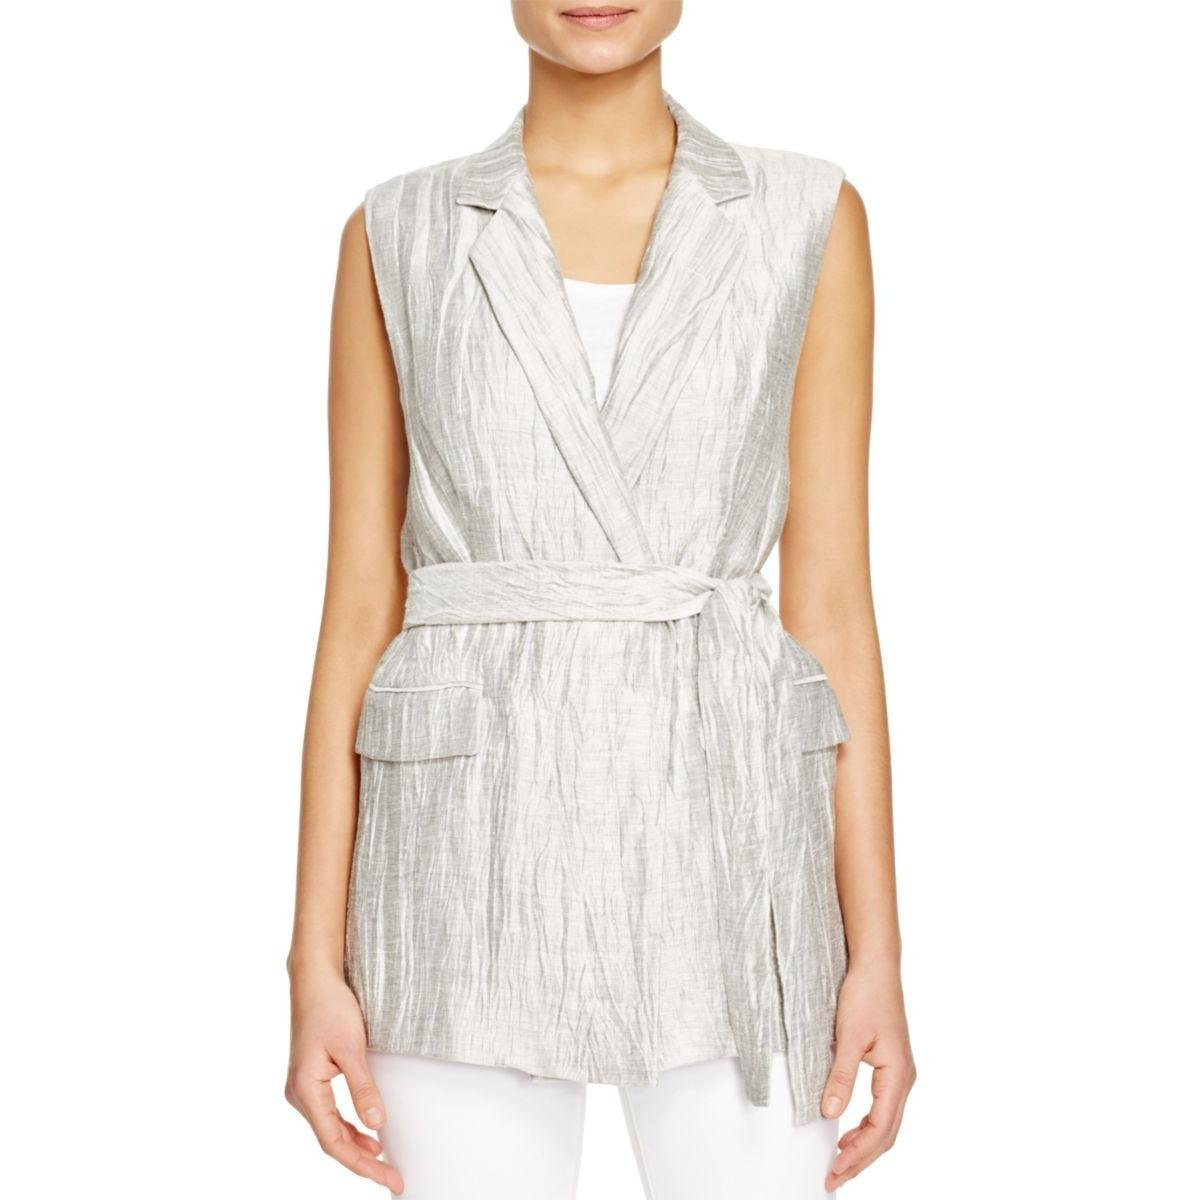 Lafayette 148 New York Womens Metallic Belt Vest Silver M